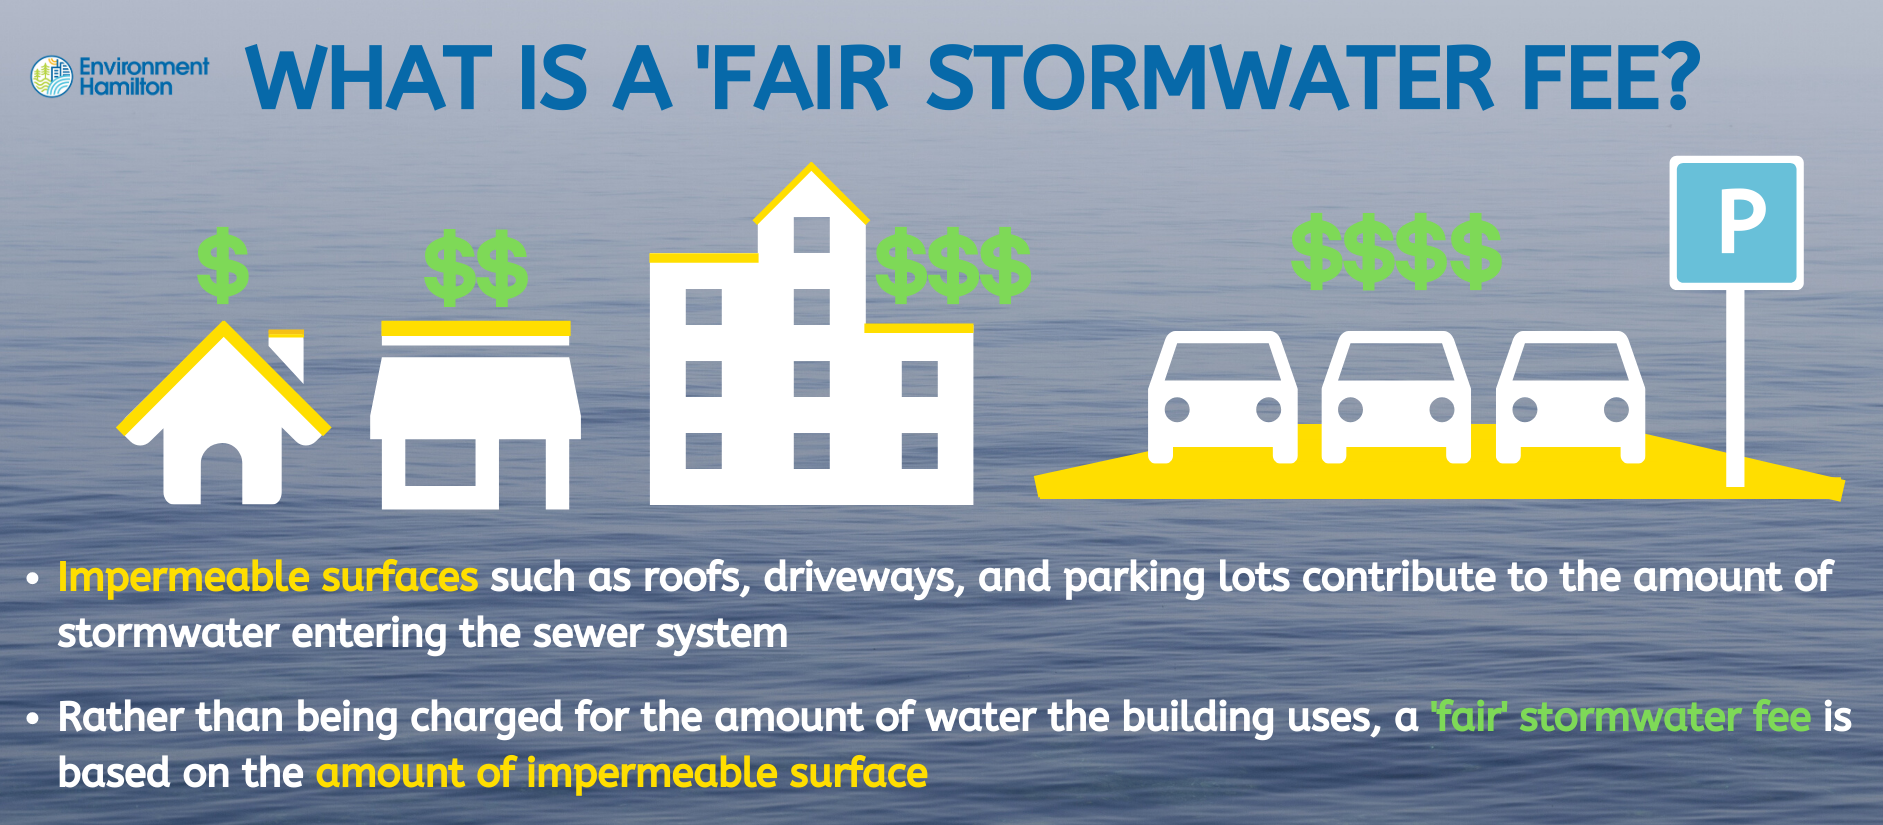 What is a fair stormwater fee?